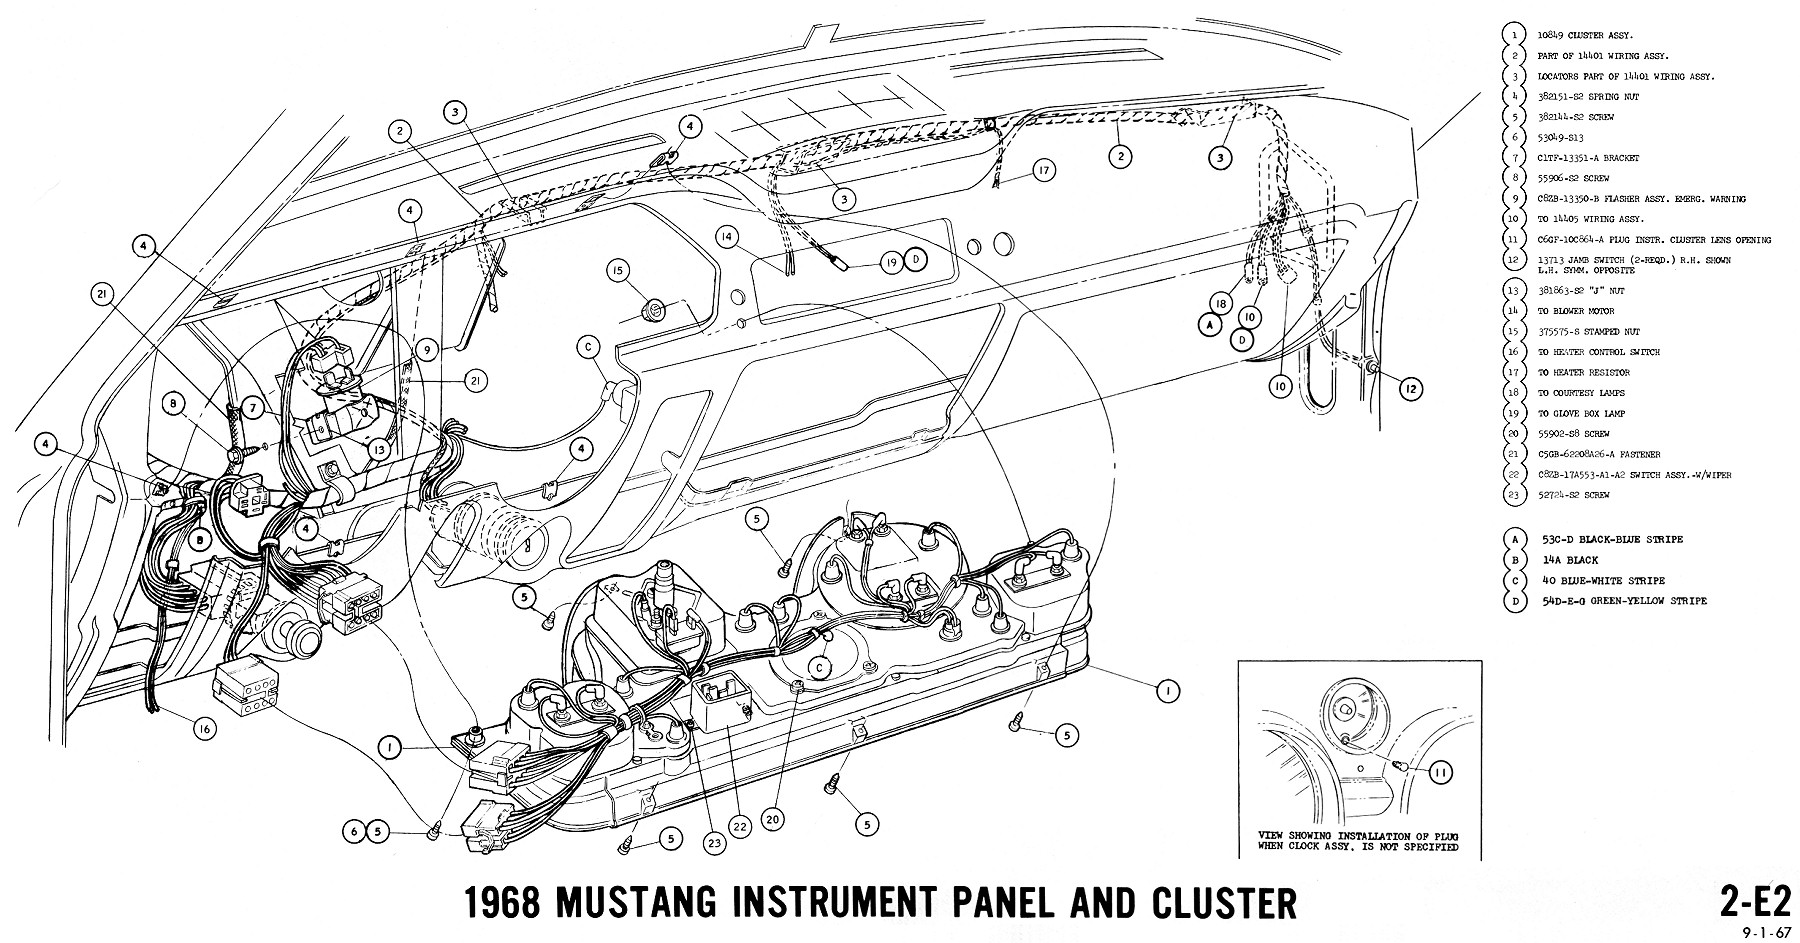 1968 mustang wiring diagram instruments 2 1969 mustang dash wiring diagram 1969 mustang wiring routing 2005 ford mustang instrument cluster wiring diagram at virtualis.co